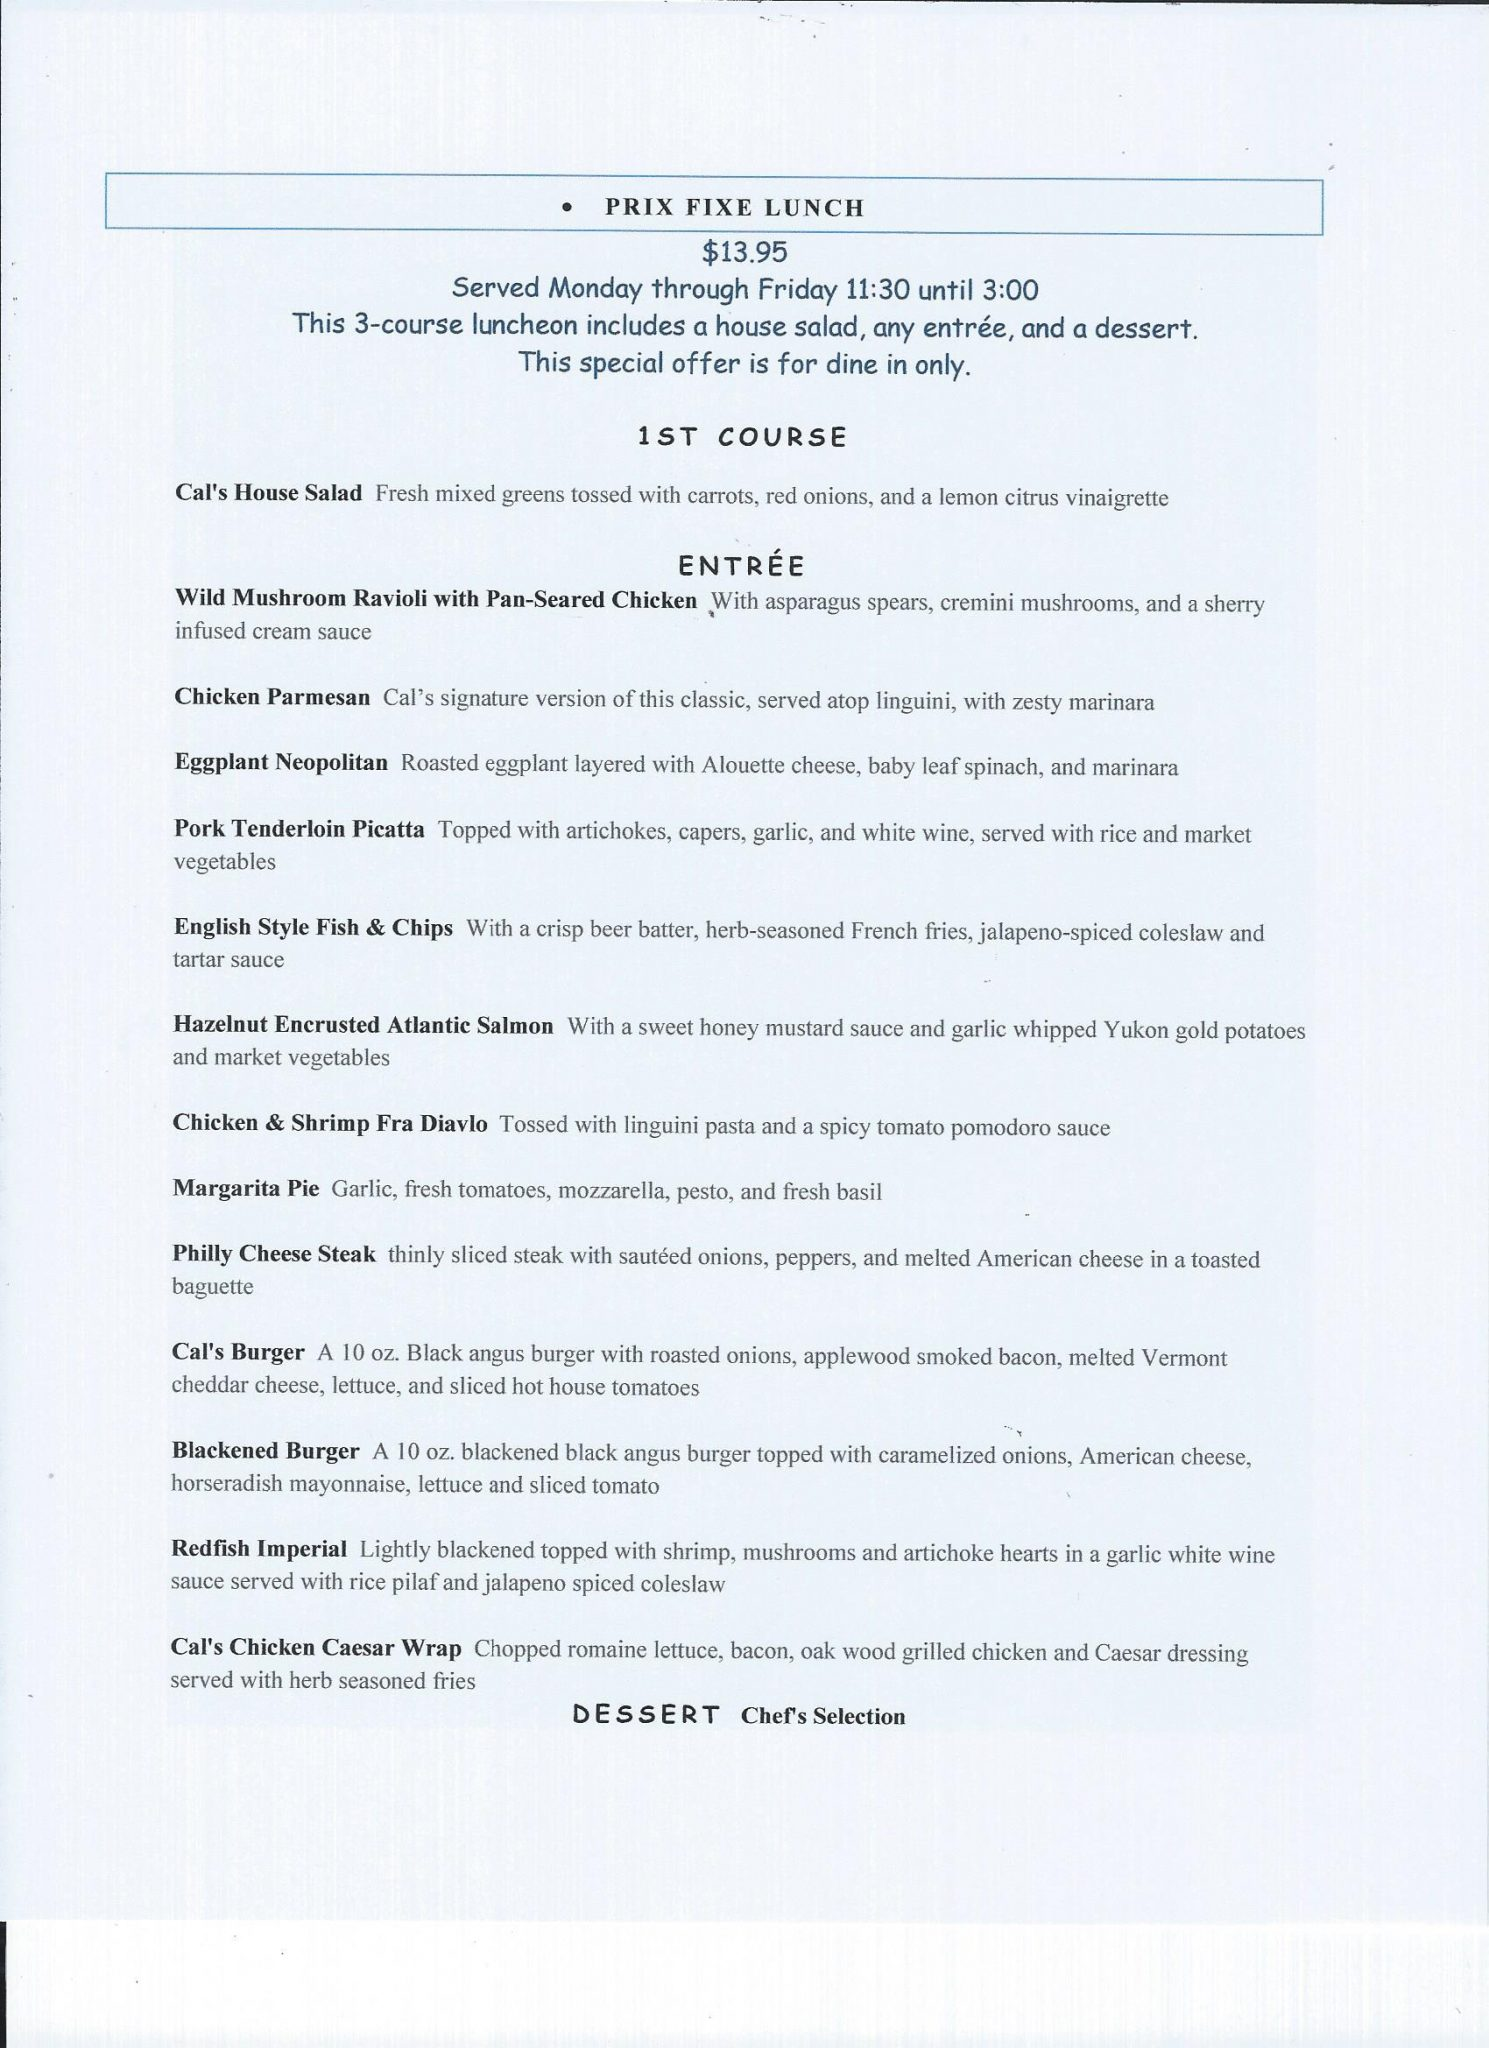 Cal's Wood-Fired Grill & Bar - Lunch Prix Fixe